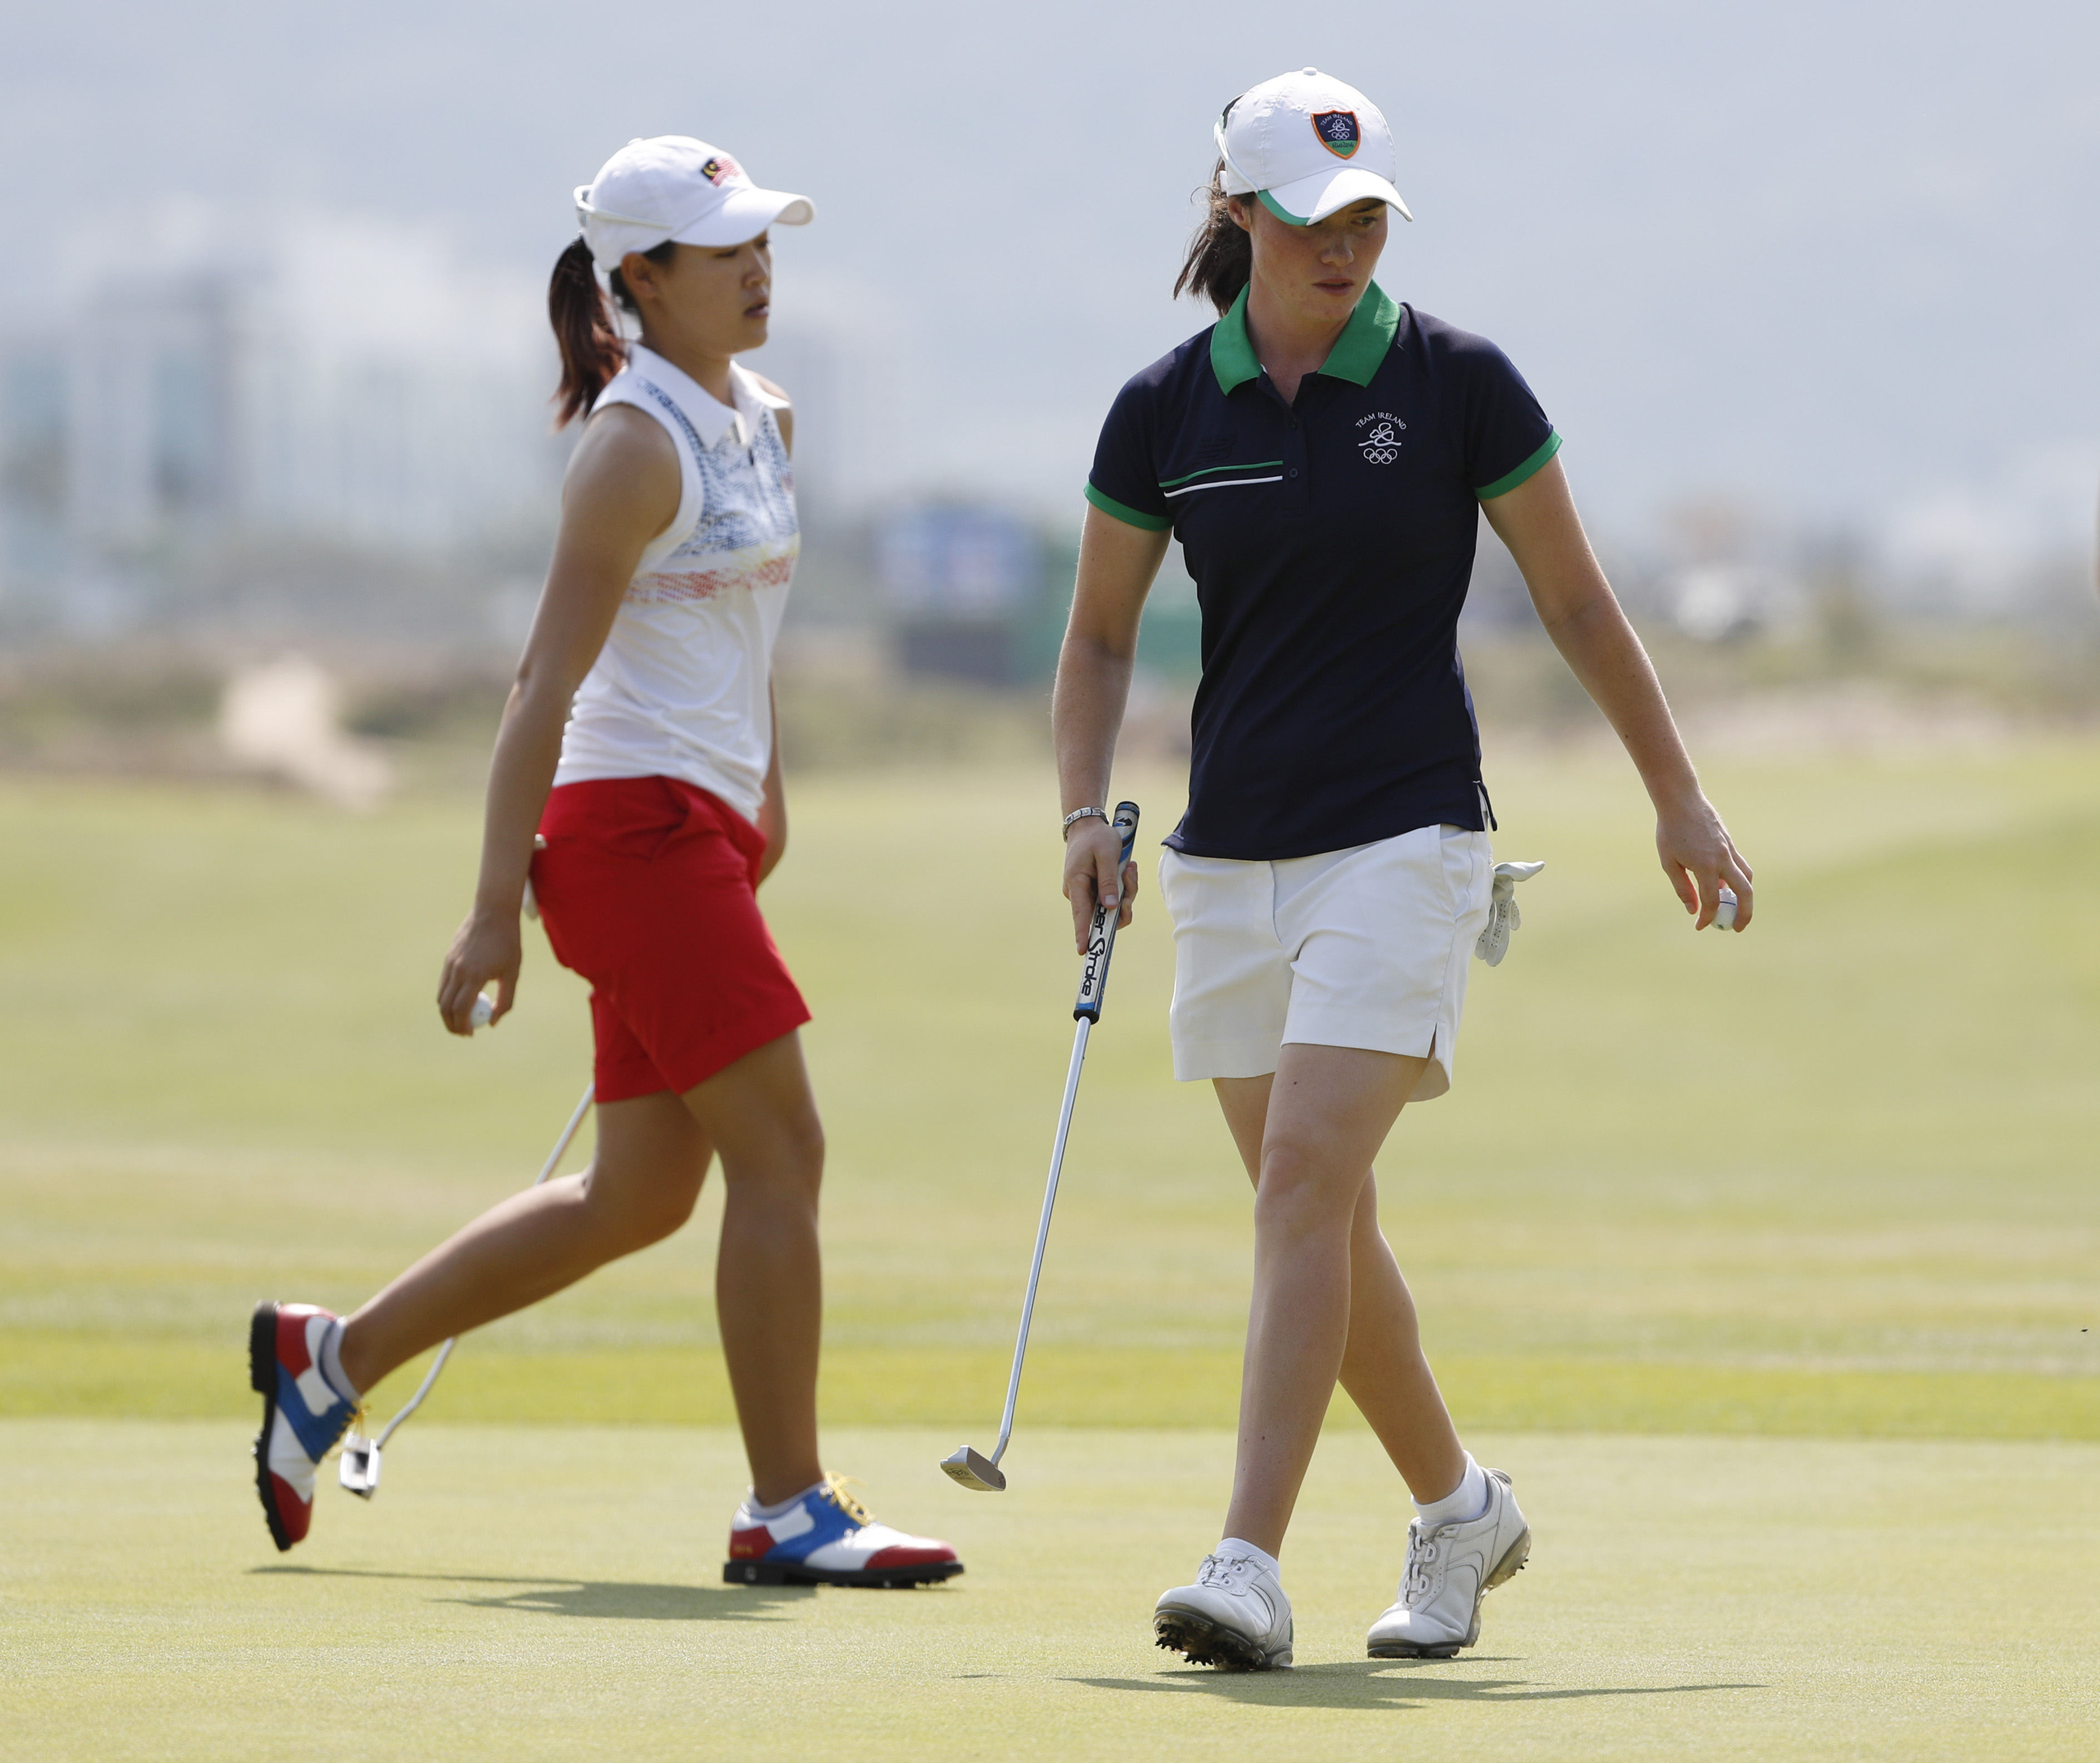 9481306-olympics-golf-womens-individual-round-2-1